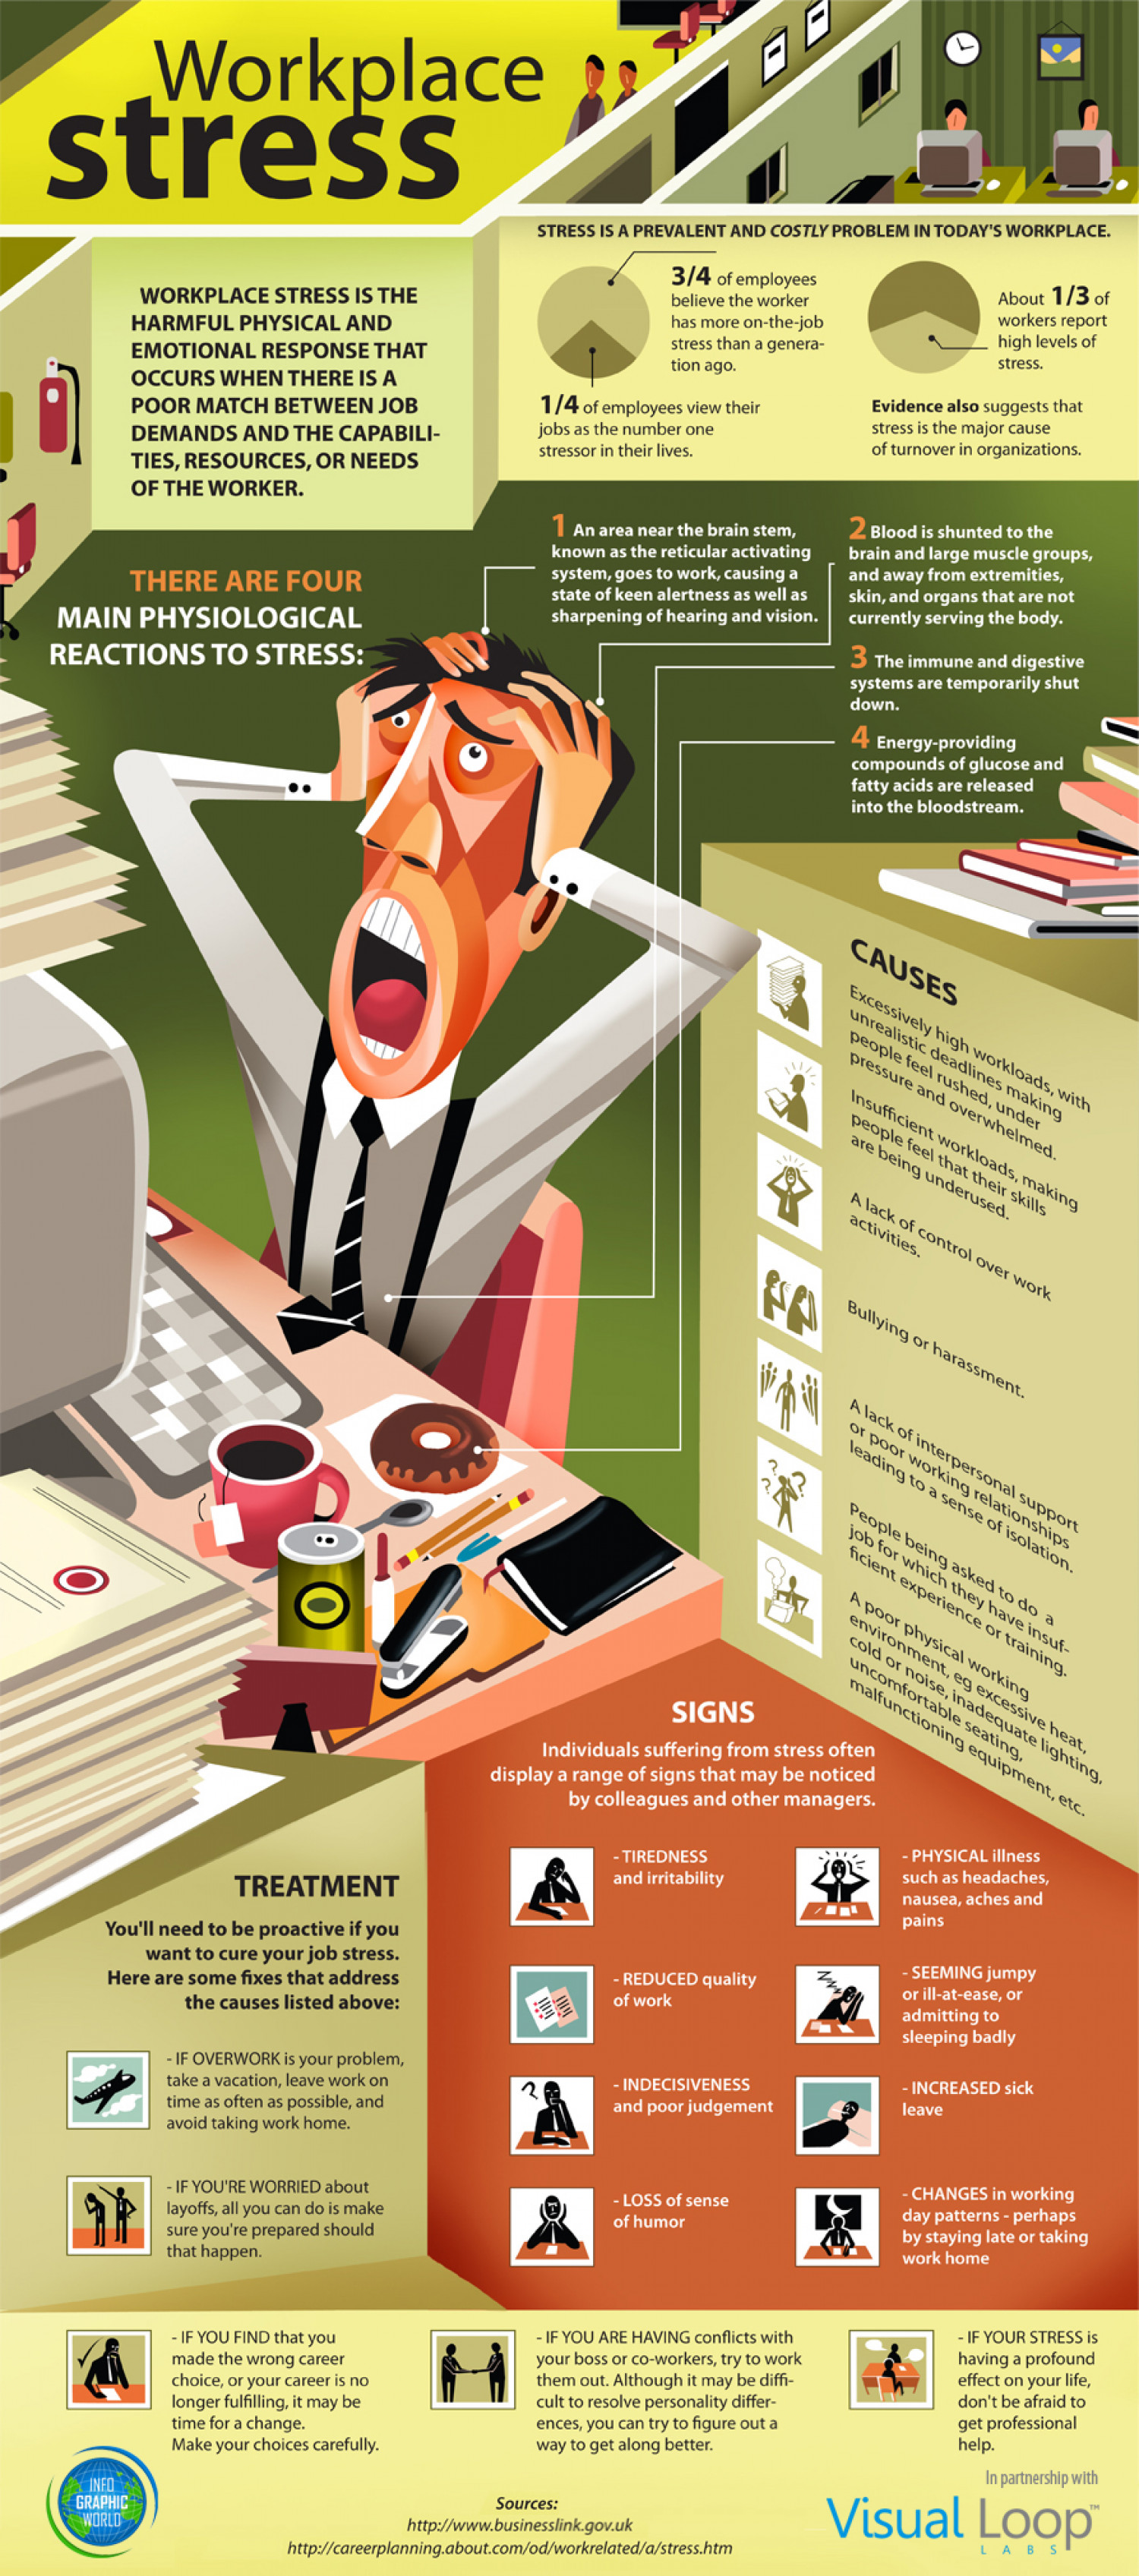 Workplace Stress Signs Symptoms Amp Treatment